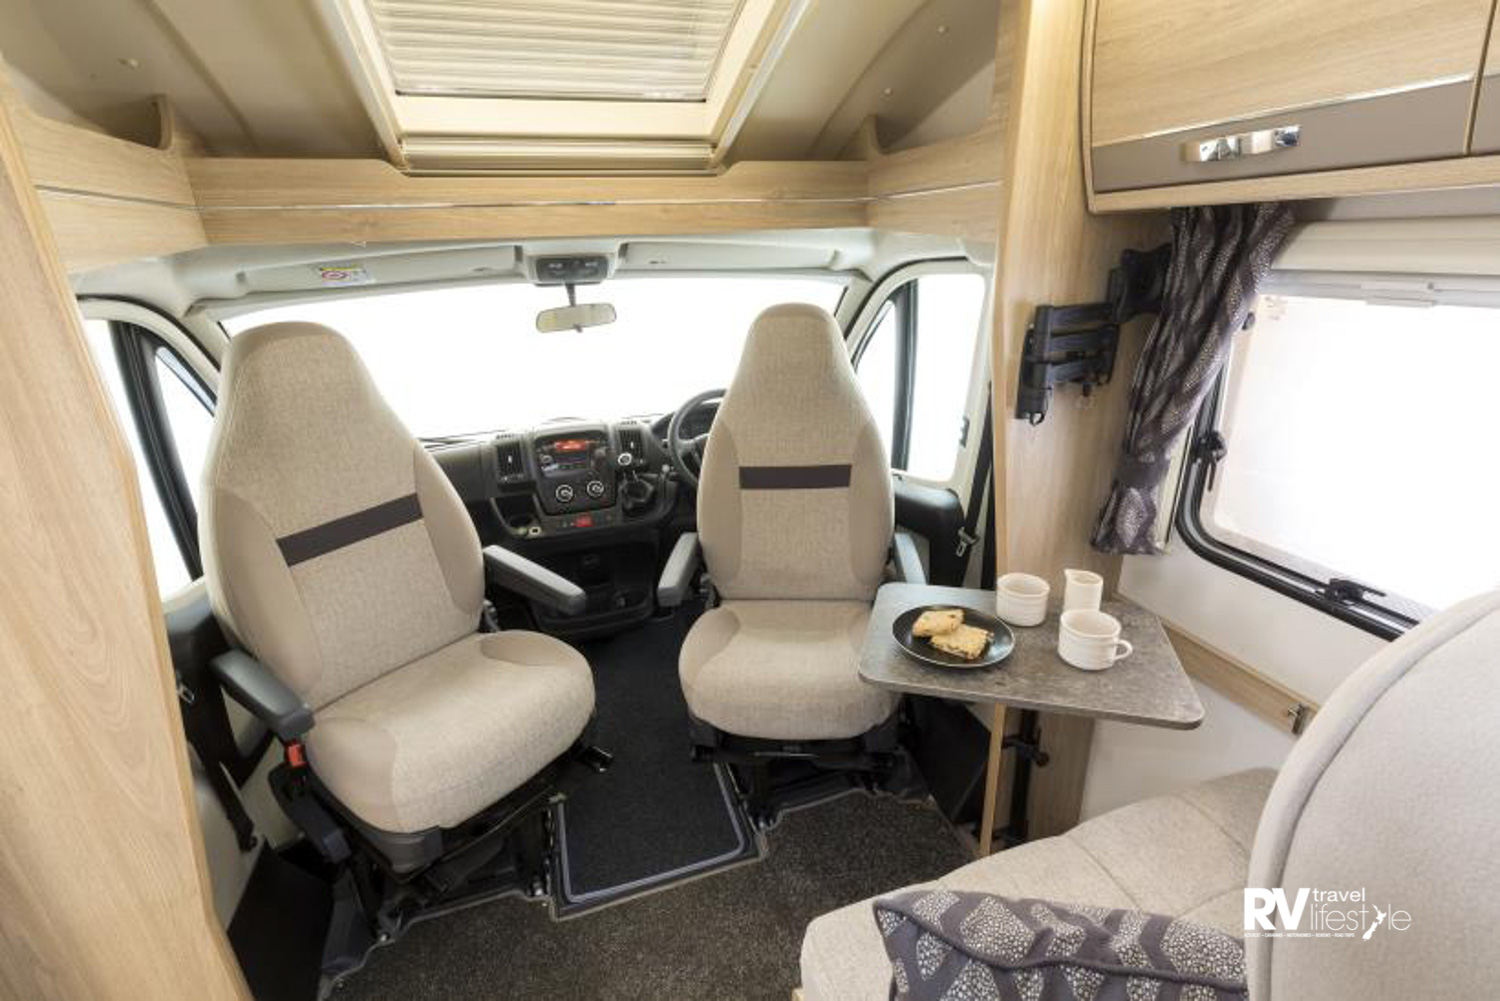 The cab seats swivel to create extra – or alternative – seating when the bed is in use